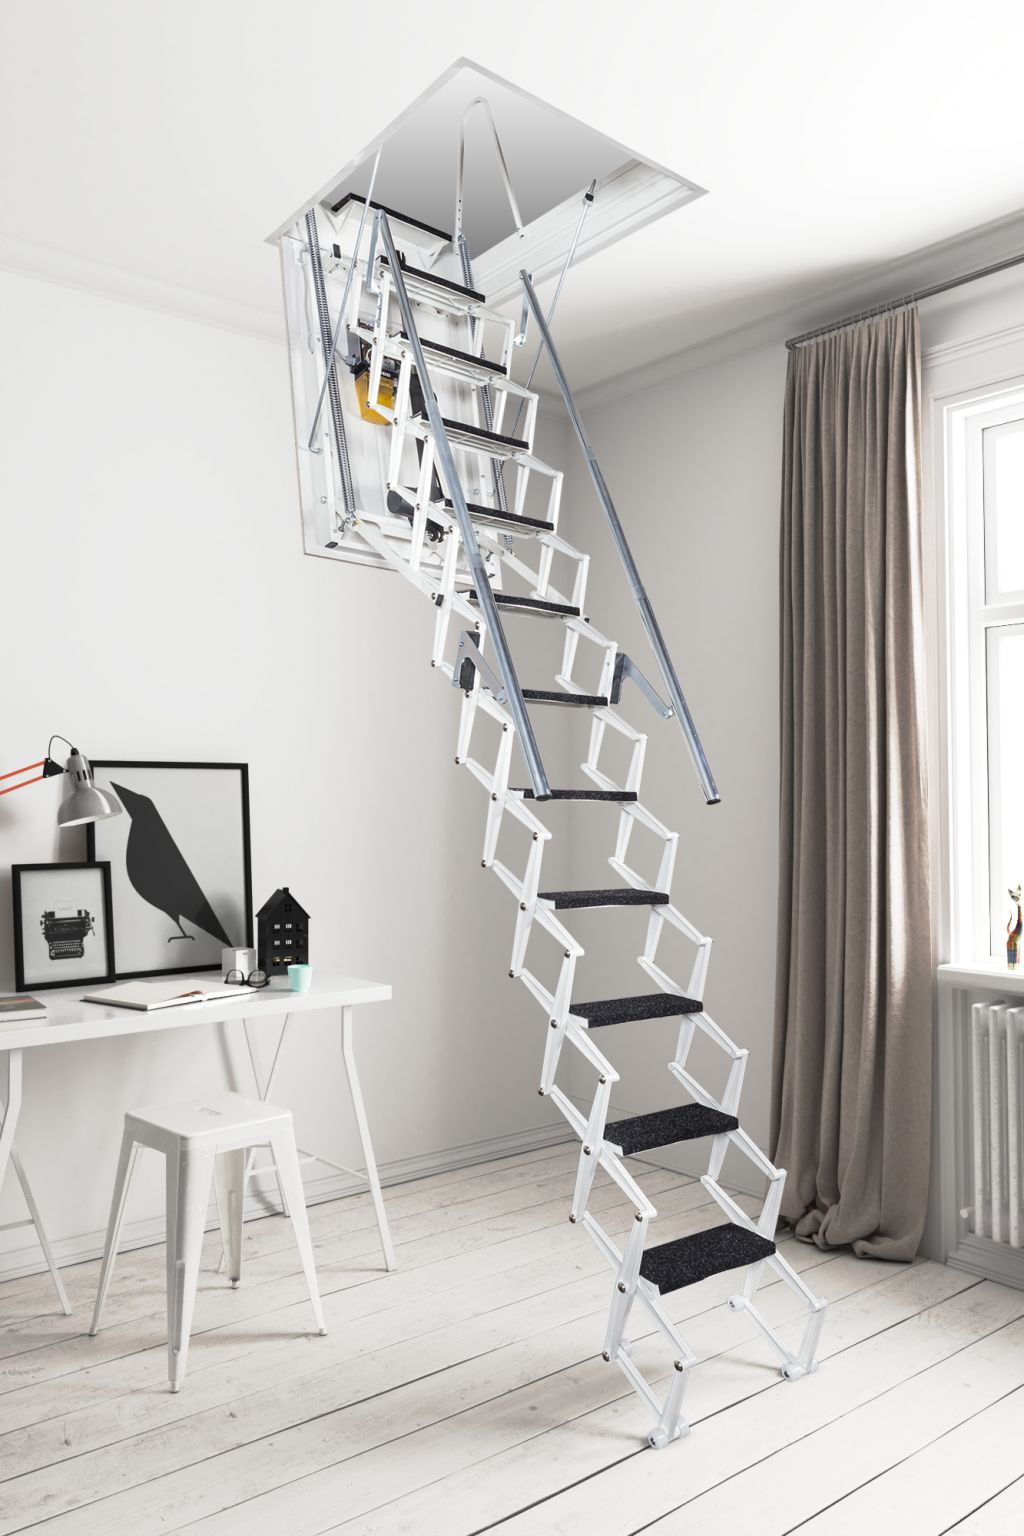 Automatic Electric Retractable Attic Stairs